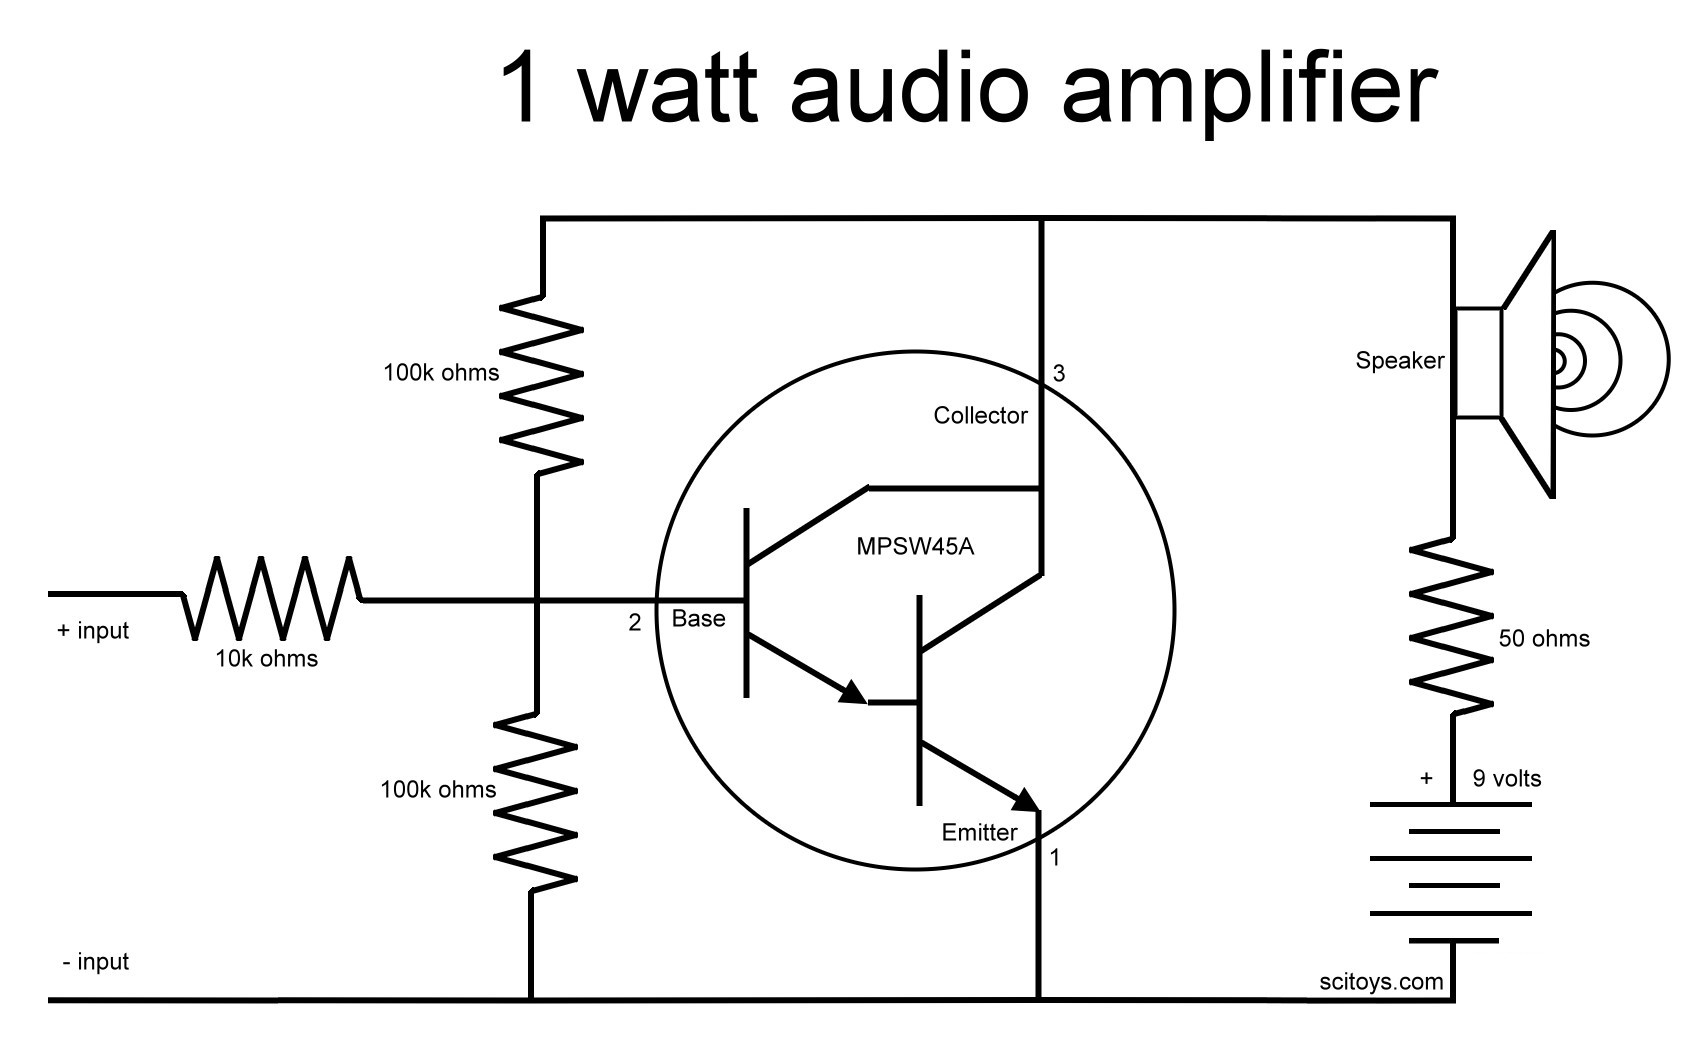 Simple Audio Amp Schematic Wire Data Schema 20022004 Ford F250 Curt T Connector Wiring Harness 55265 Chapter 10 Computers And Electronics Build A 1 Watt Rh Sci Toys Com Amplifier Power Circuit